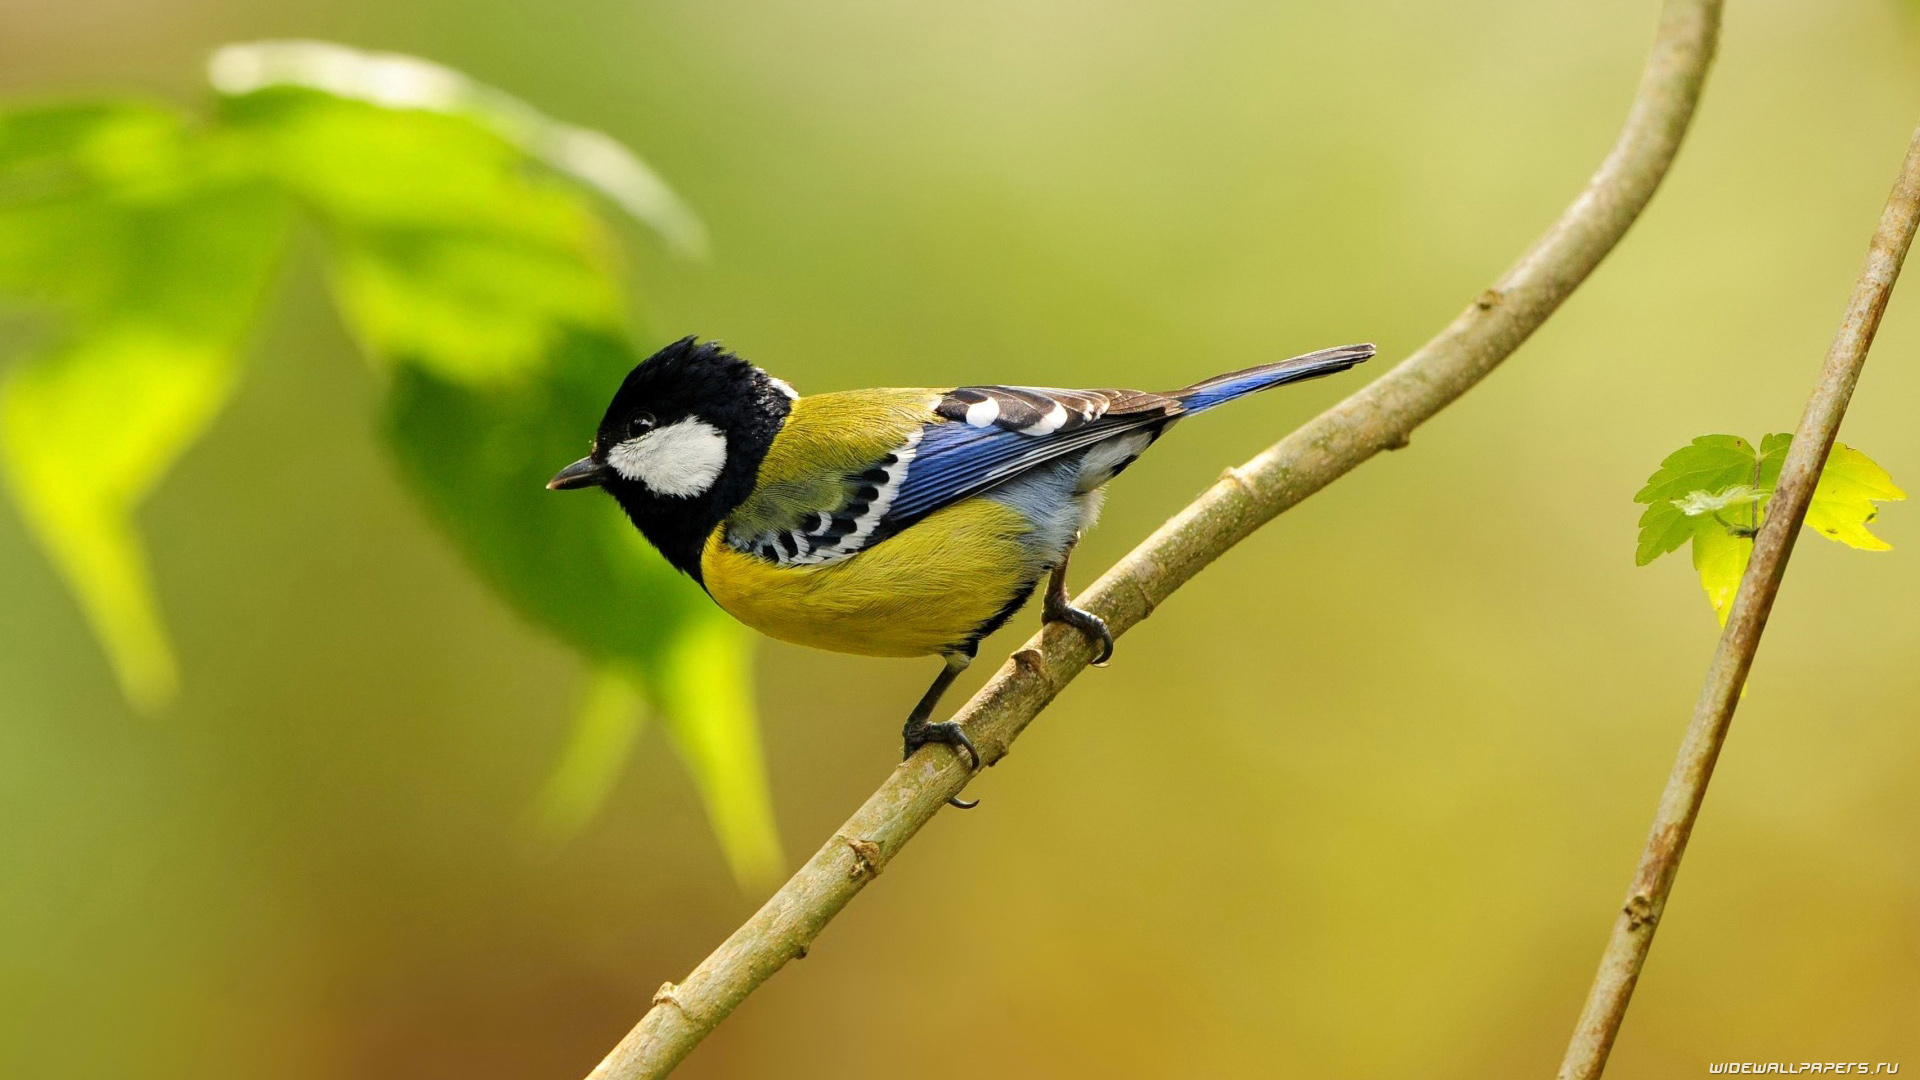 selection of 10 Images of Birds in HD quality 1920x1080